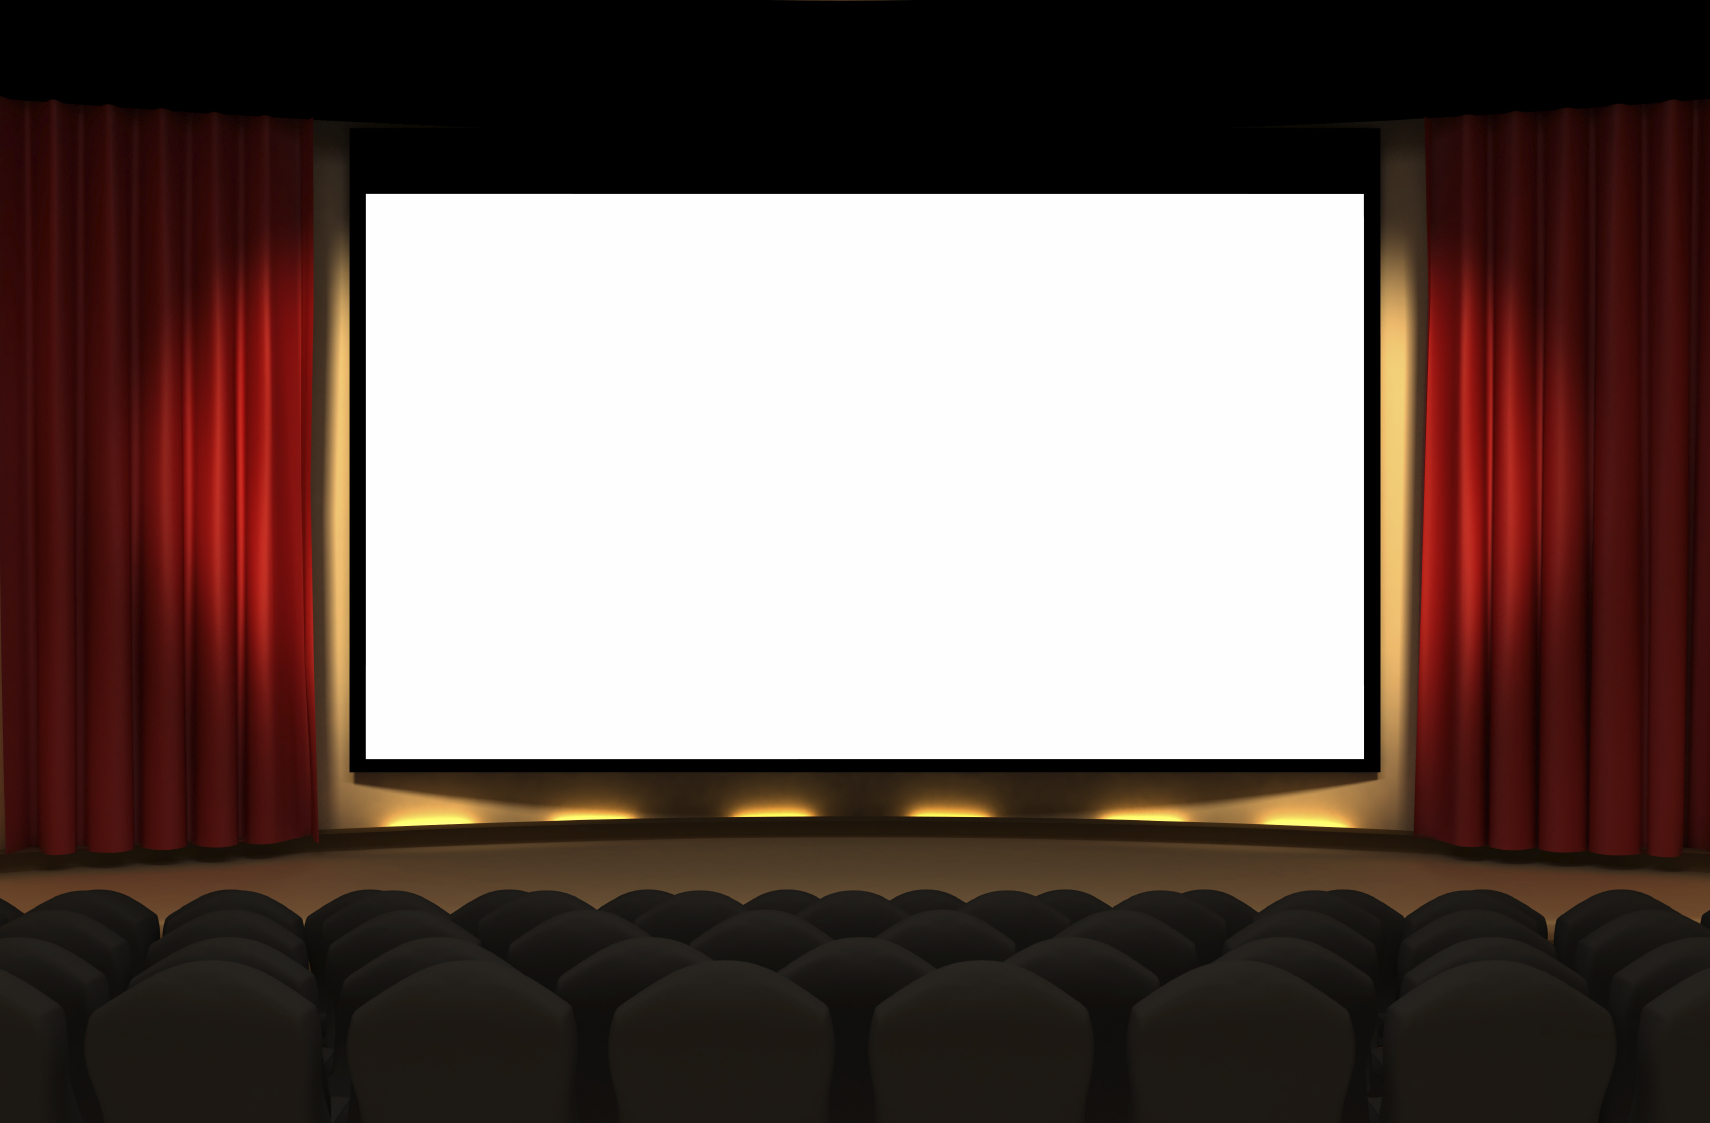 Movie Theater Clipart Border Free Images Gclipartcom